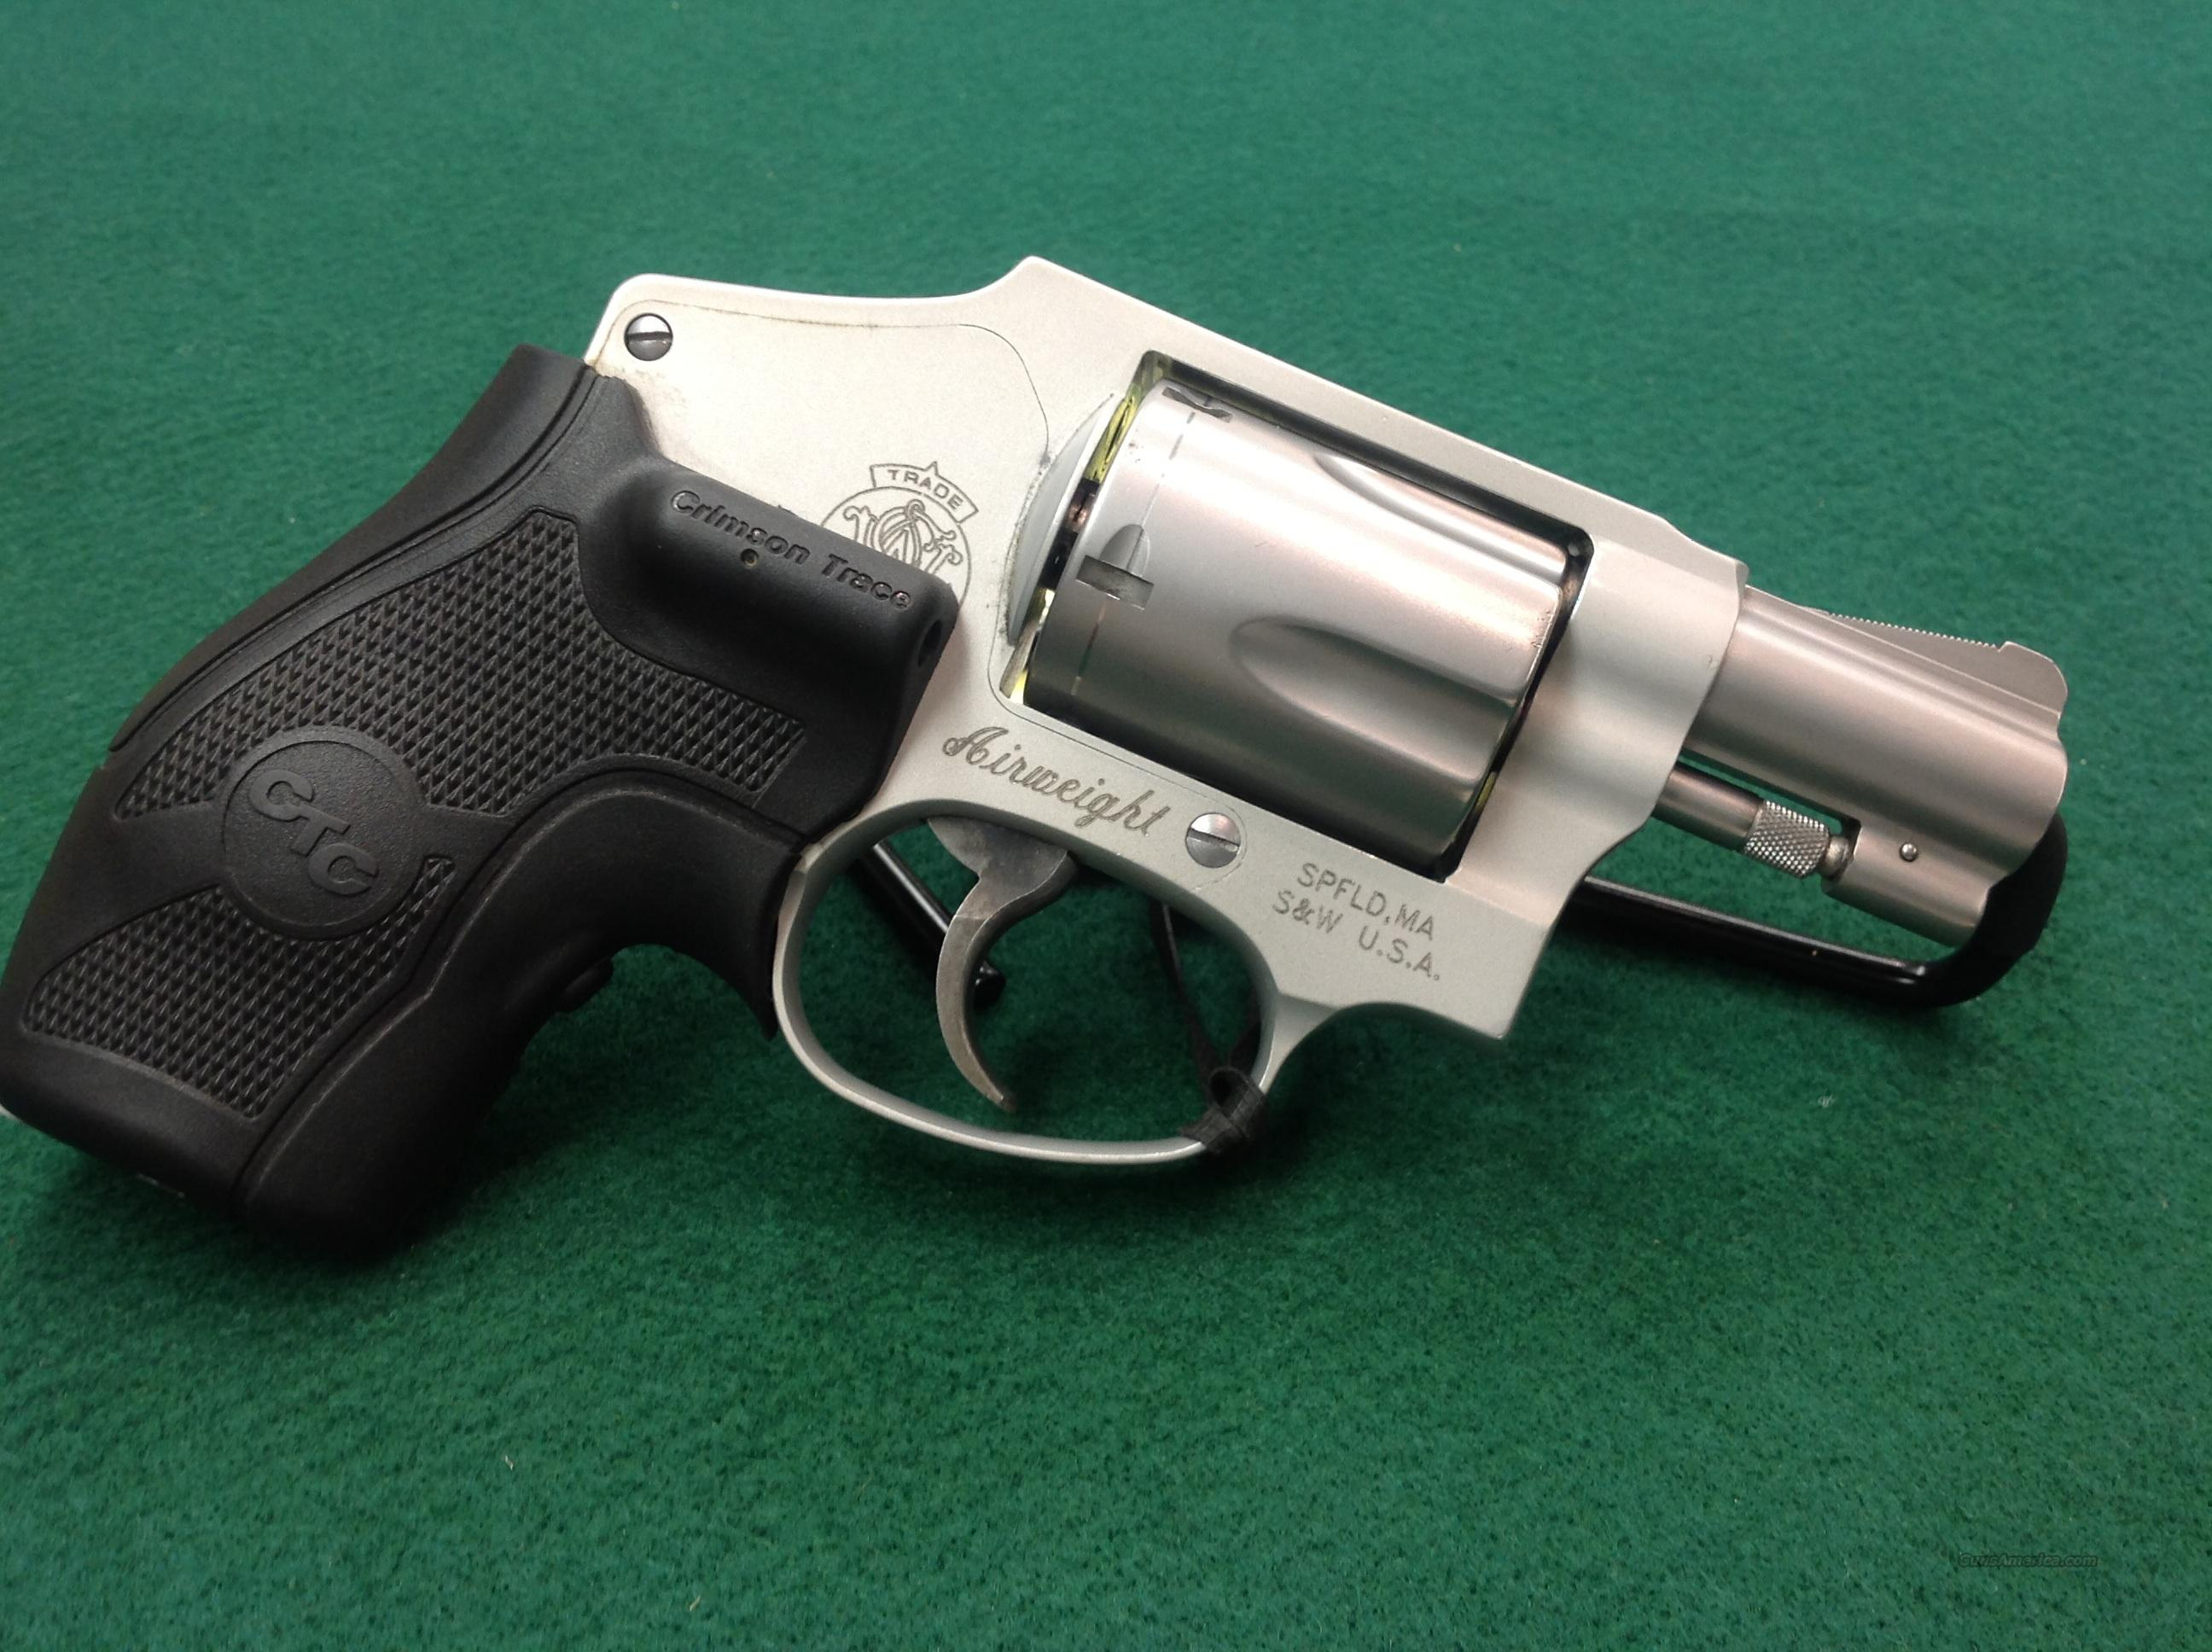 S&W Model 642 W/ Crimson Trace  Guns > Pistols > Smith & Wesson Revolvers > Full Frame Revolver